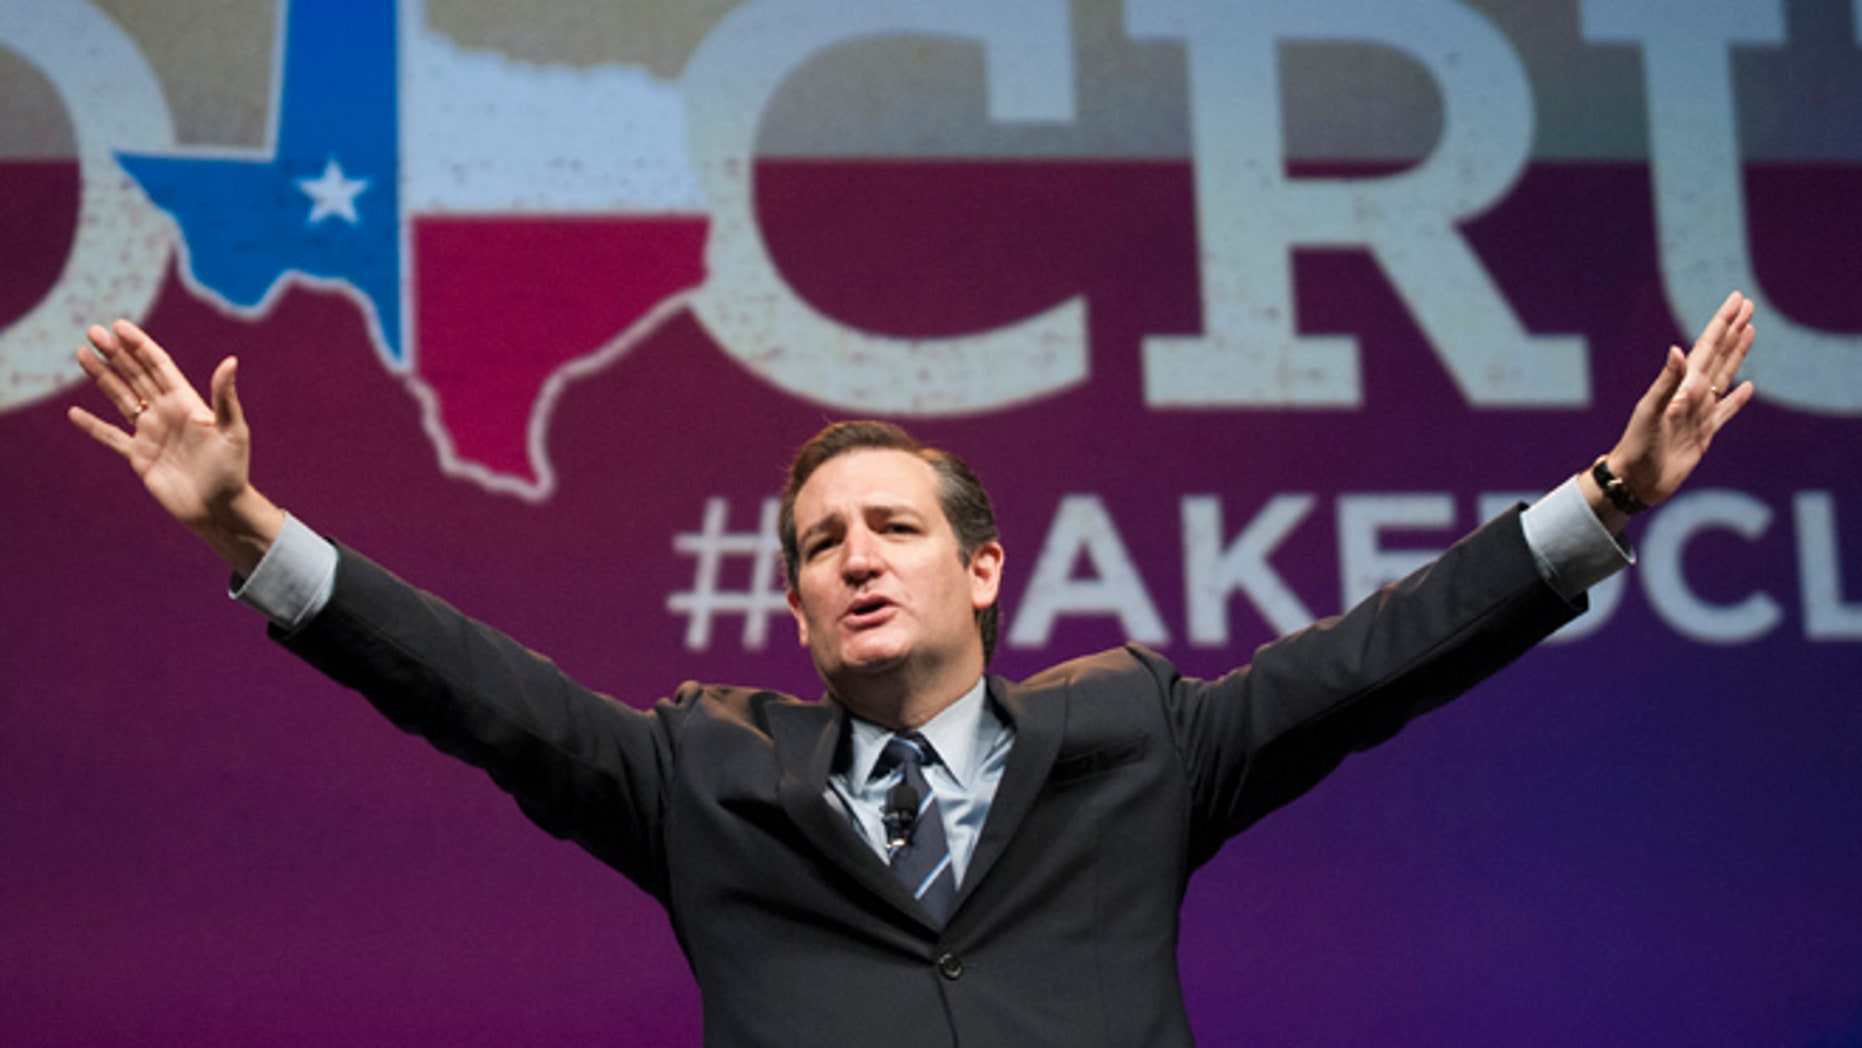 June 6, 2014: Sen. Ted Cruz address delegates at the Texas GOP Convention in Fort Worth, Texas.